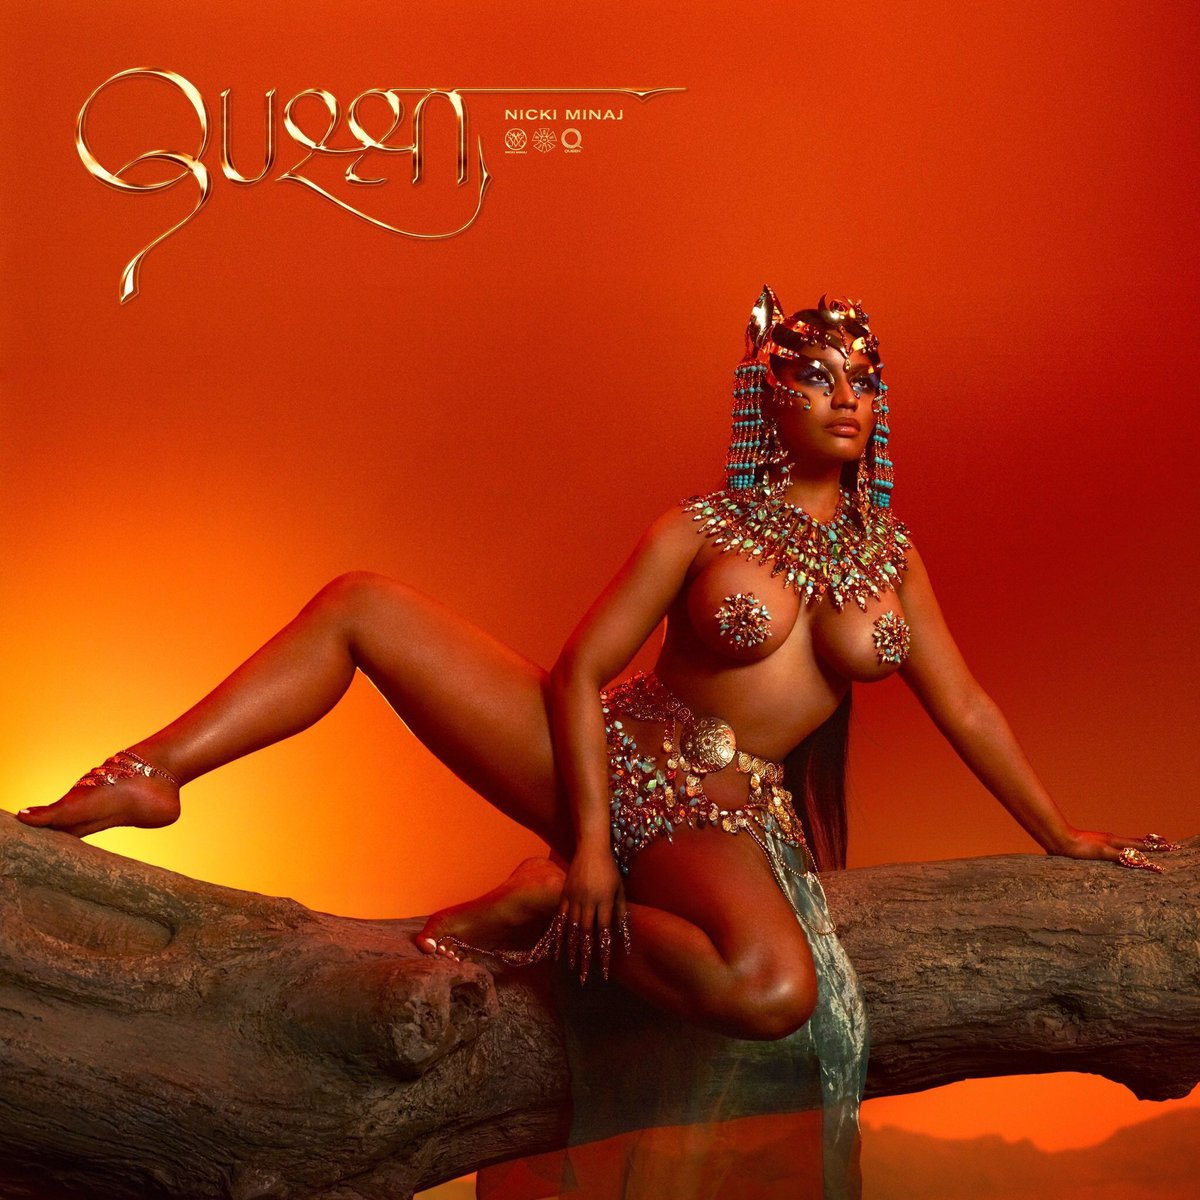 We've just added @NickiMinaj's new album #QUEEN to this week's new releases! 🔥 bit.ly/1fYTfe4